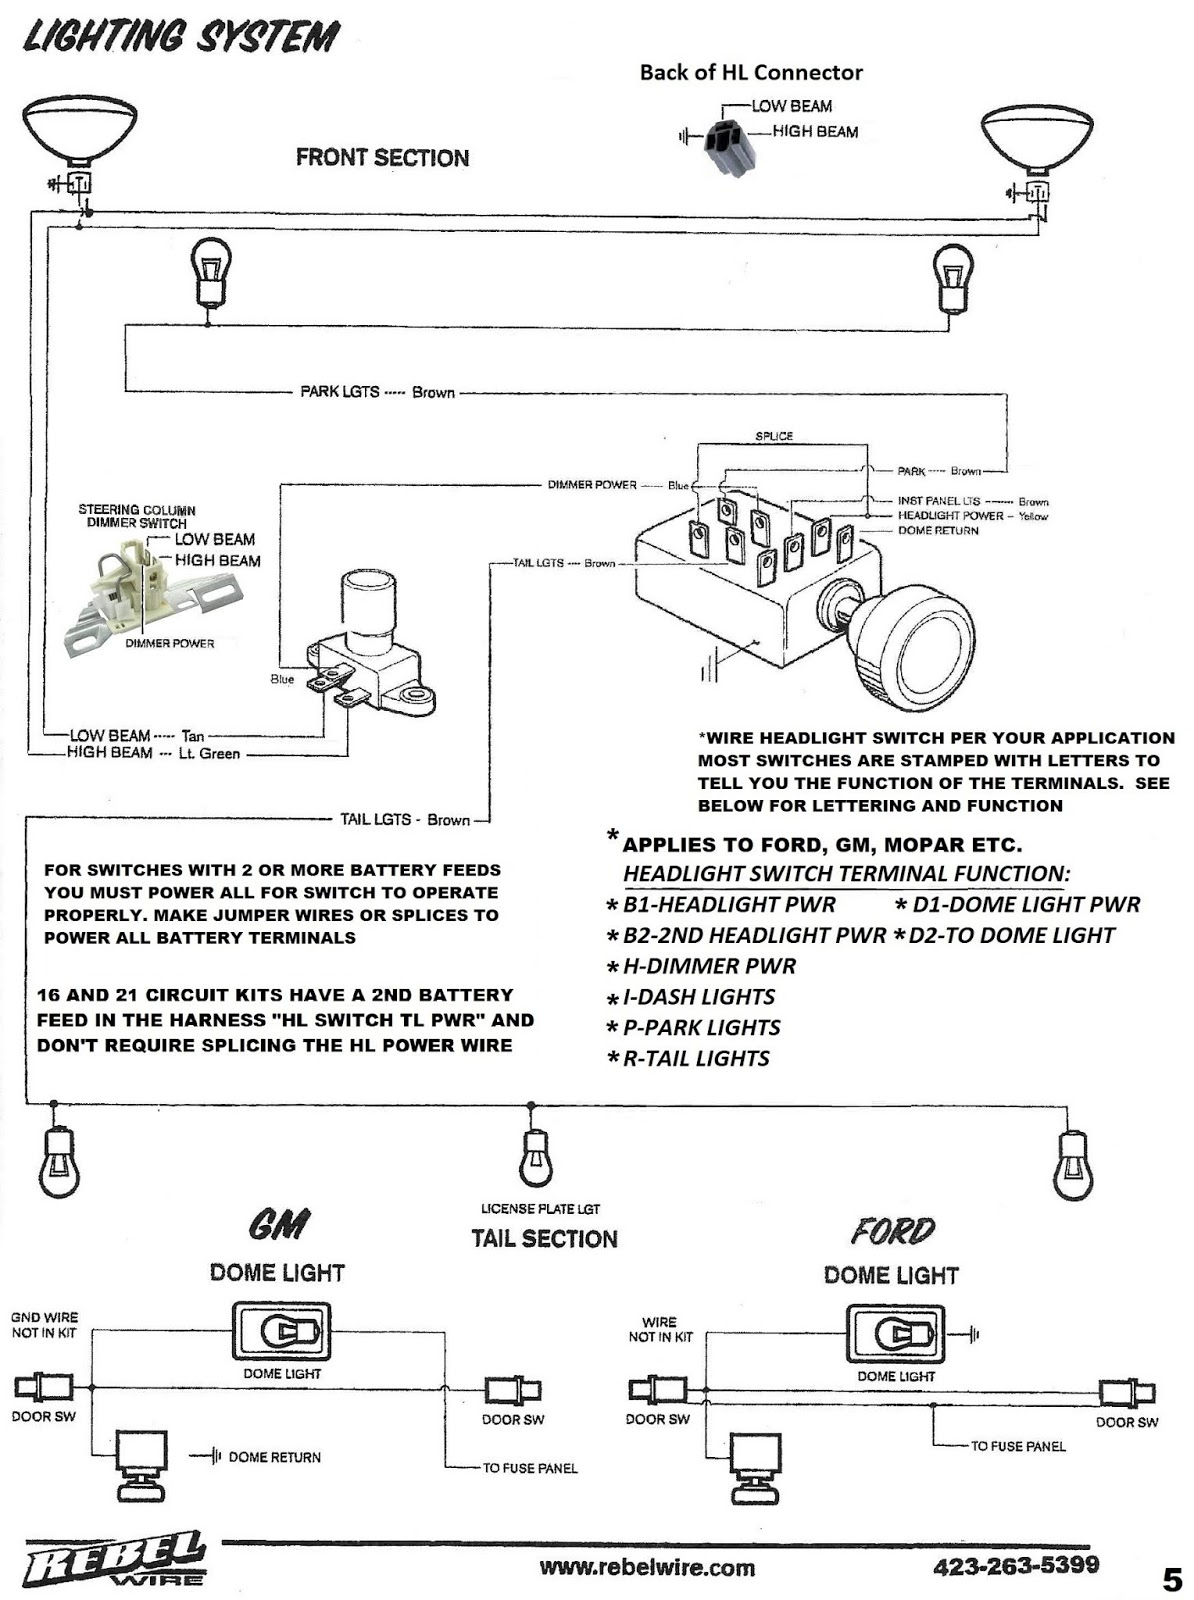 small resolution of street rod wiring diagram vp instrument cluster help asapl3vndashwiringjpg wiring diagramdome light wiring diagram together with chevy dome light wiring